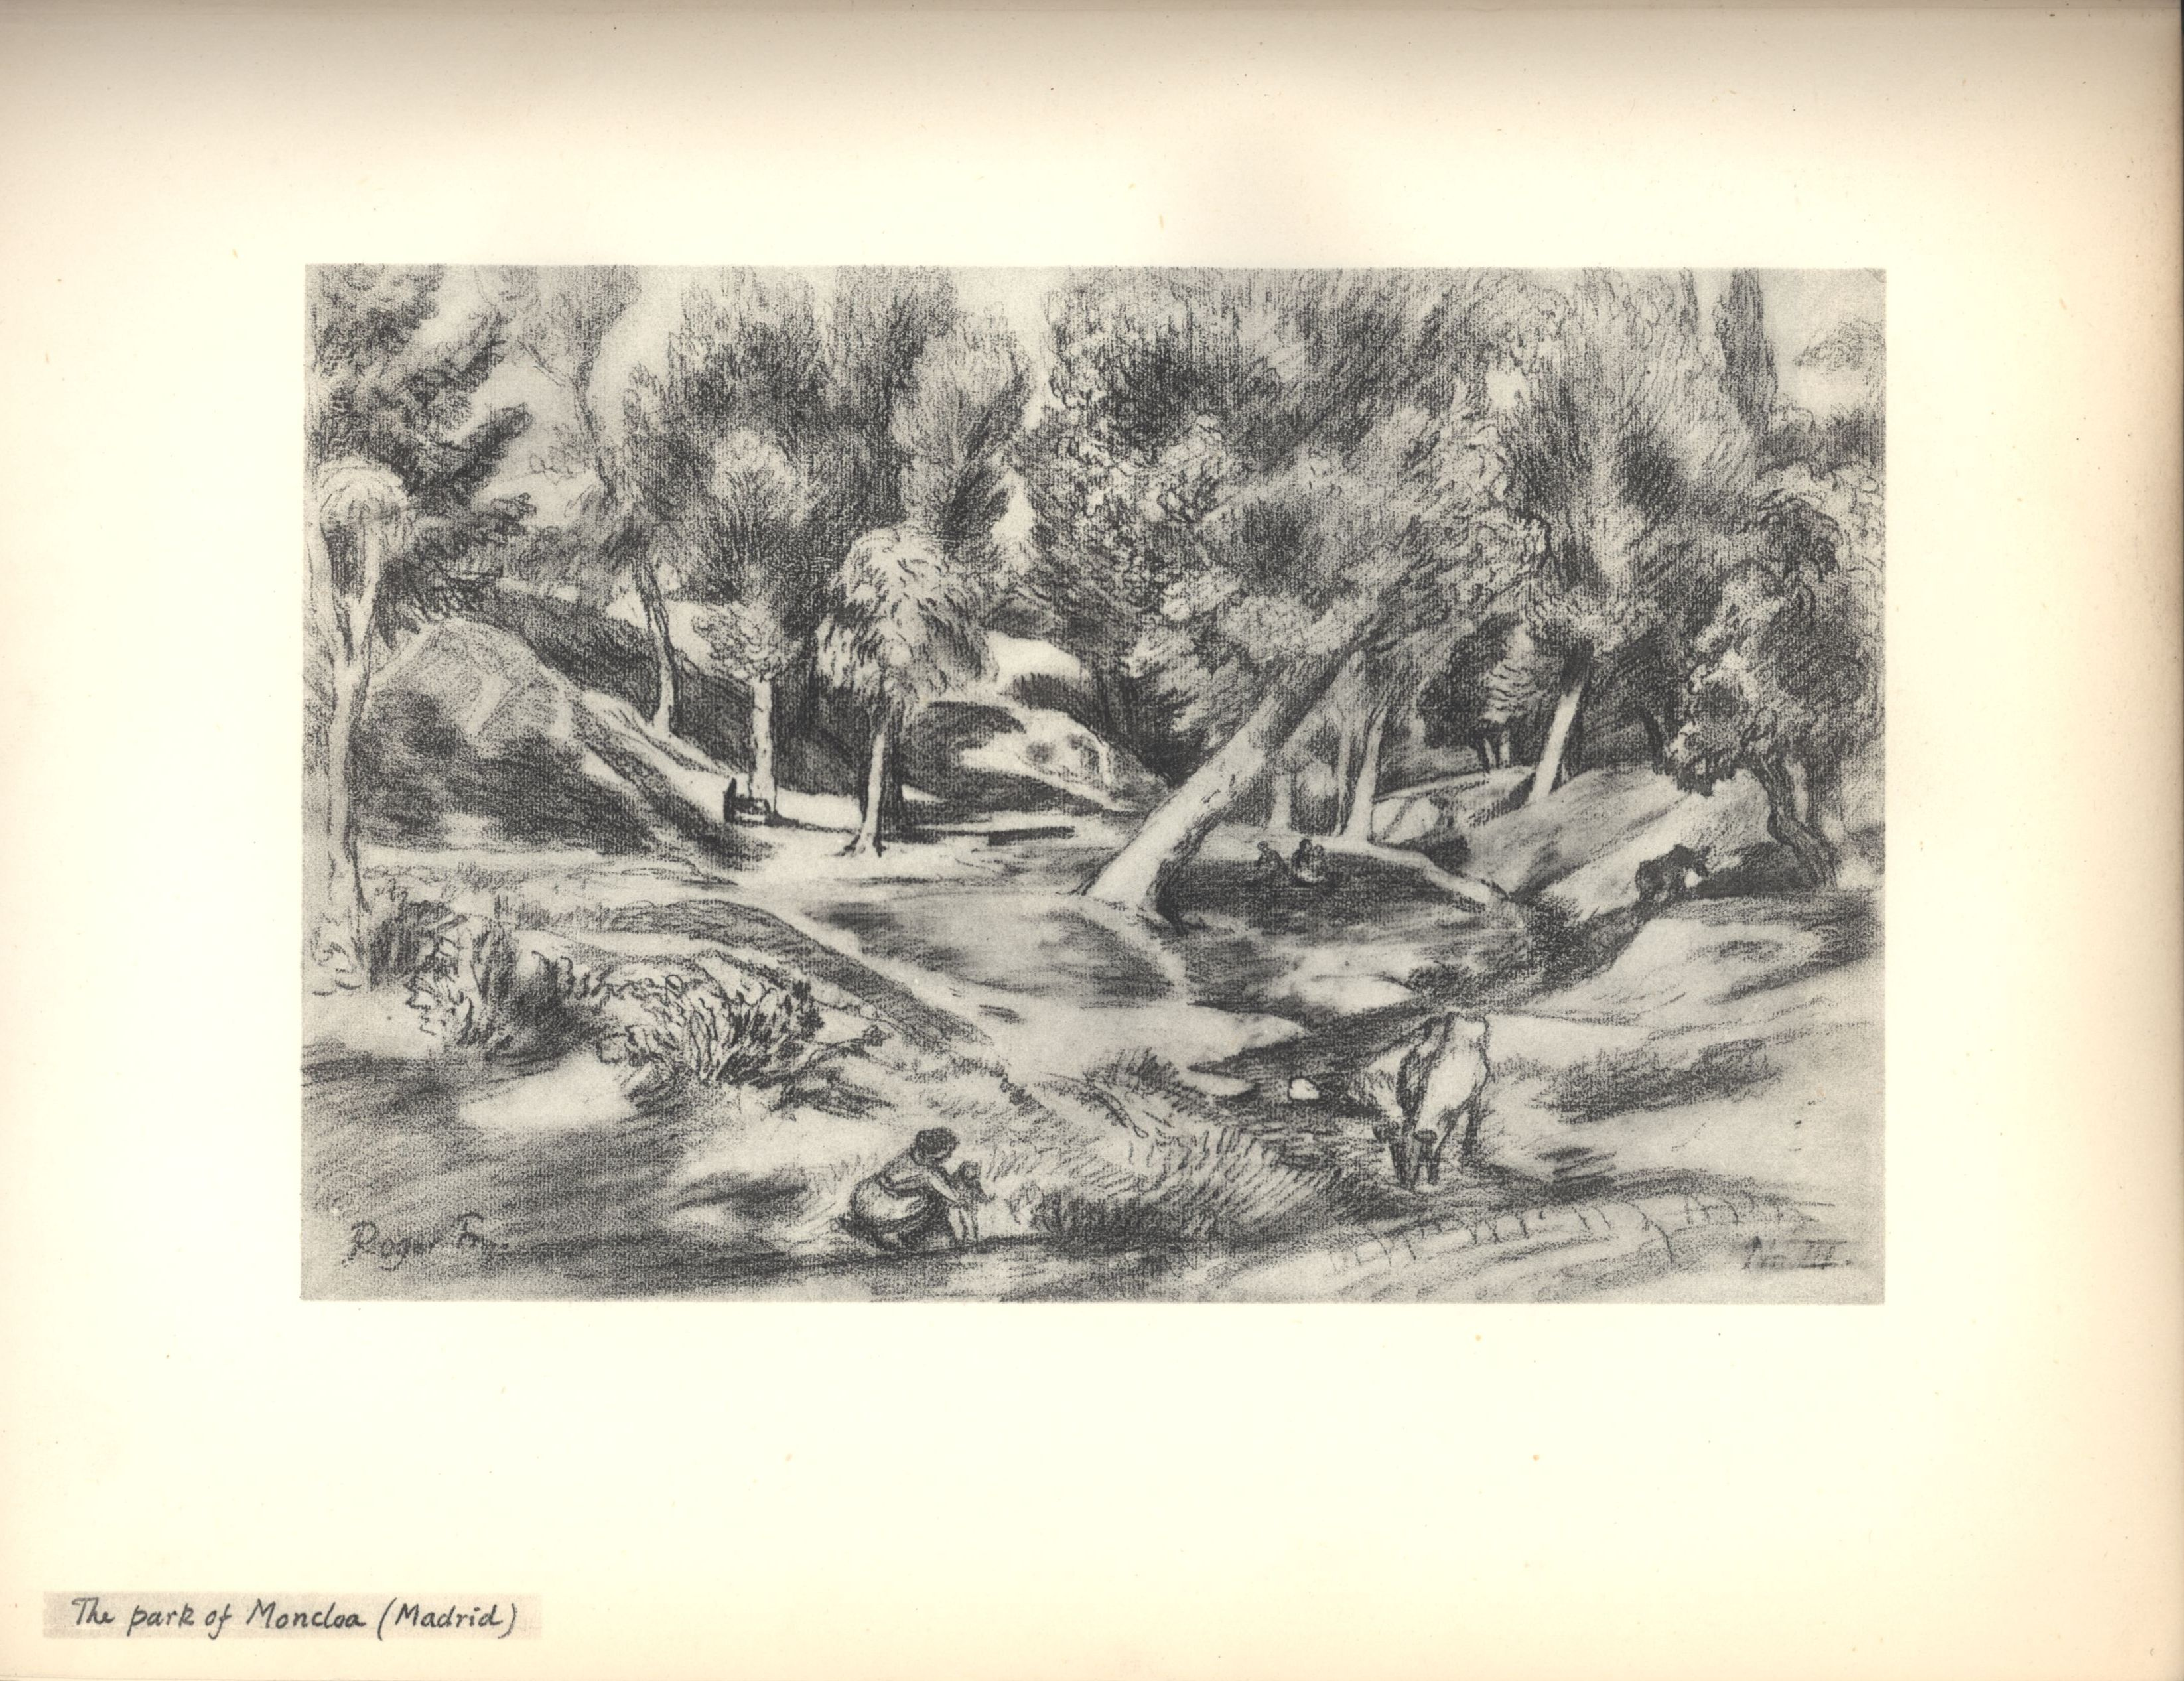 The park of Moncloa (Madrid). Sketch from Roger Fry's sketchbook, 1923, used in 'A Sampler of Castile'.